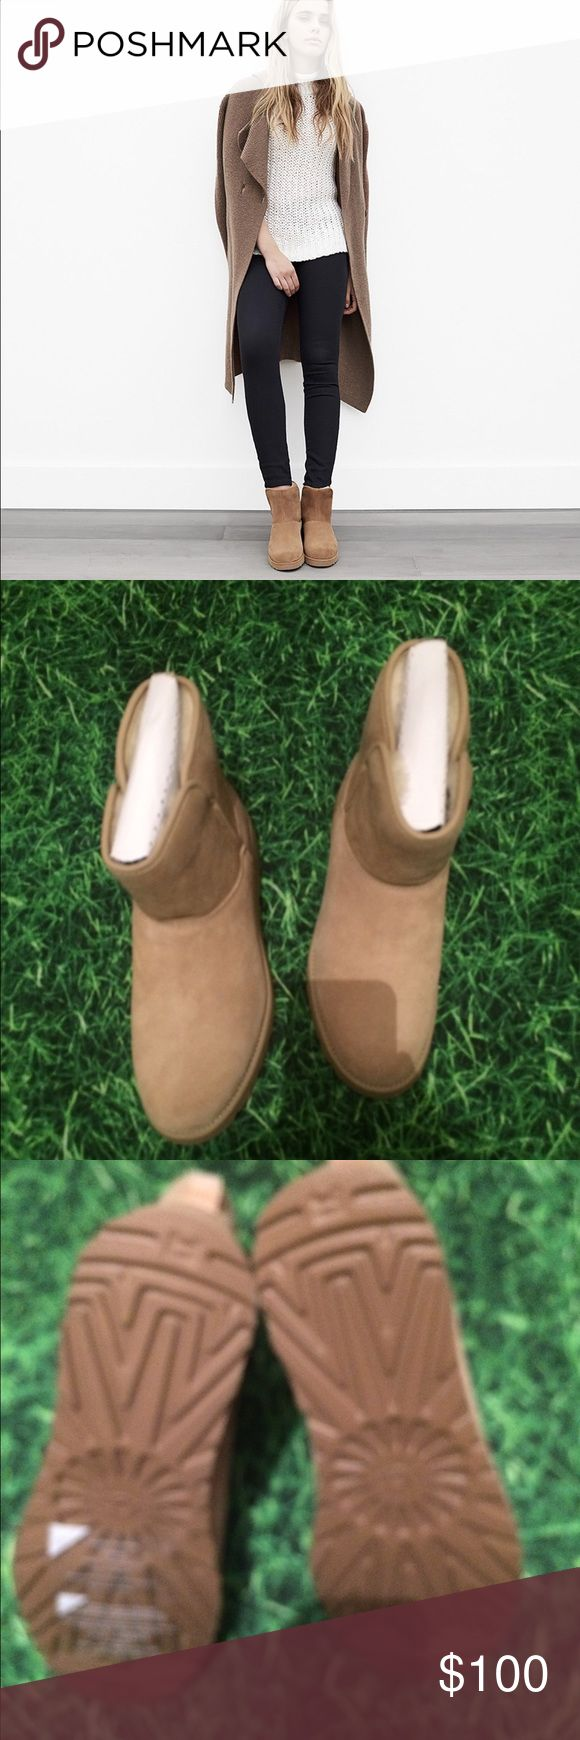 Ugg Kristin First pic not for color. Color is sand. Price is firm. No trades please. No bundling available this Tim UGG Shoes